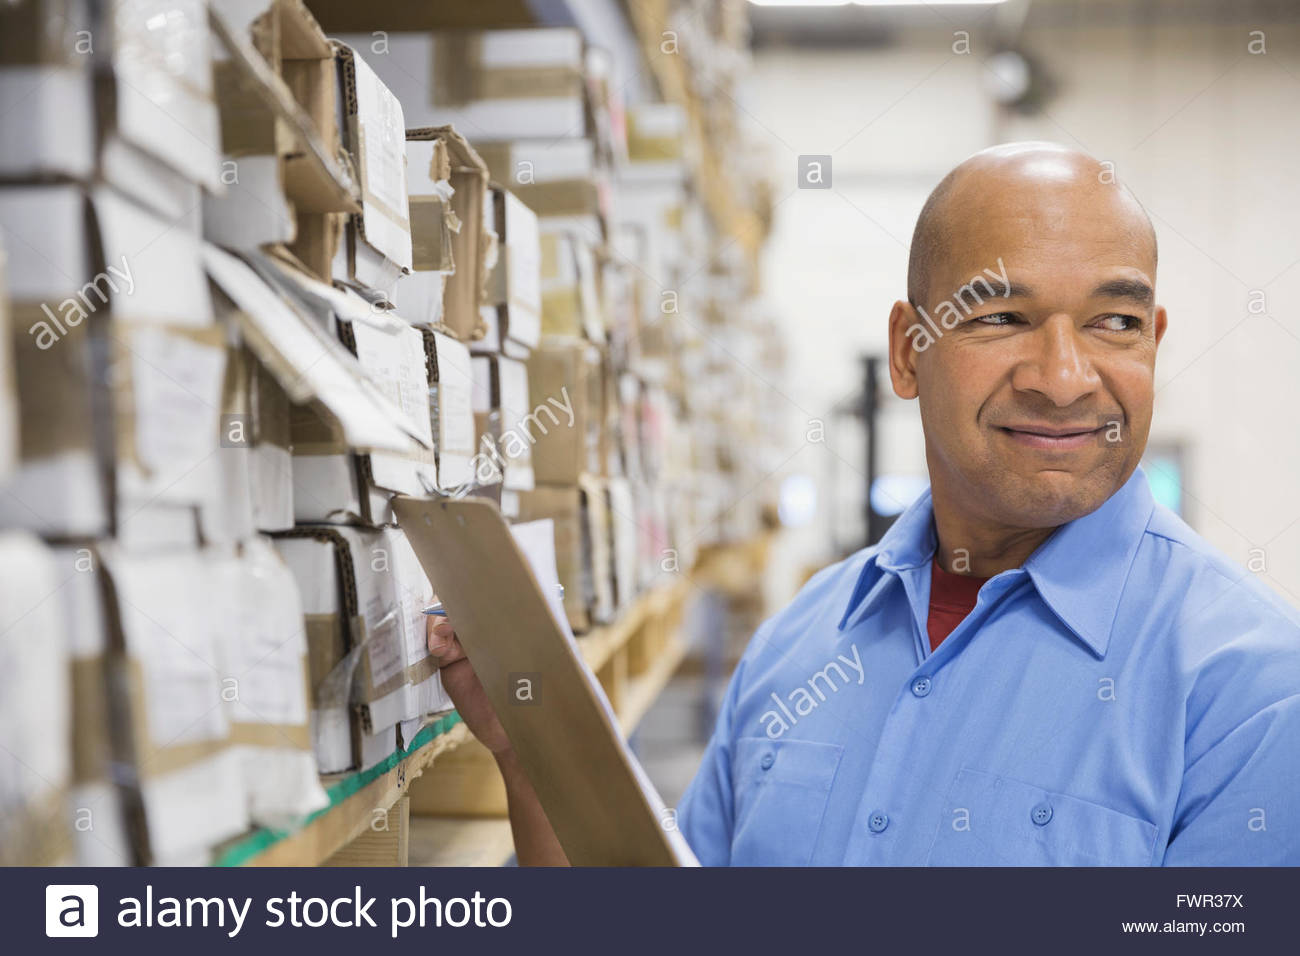 Male worker with clipboard in warehouse - Stock Image